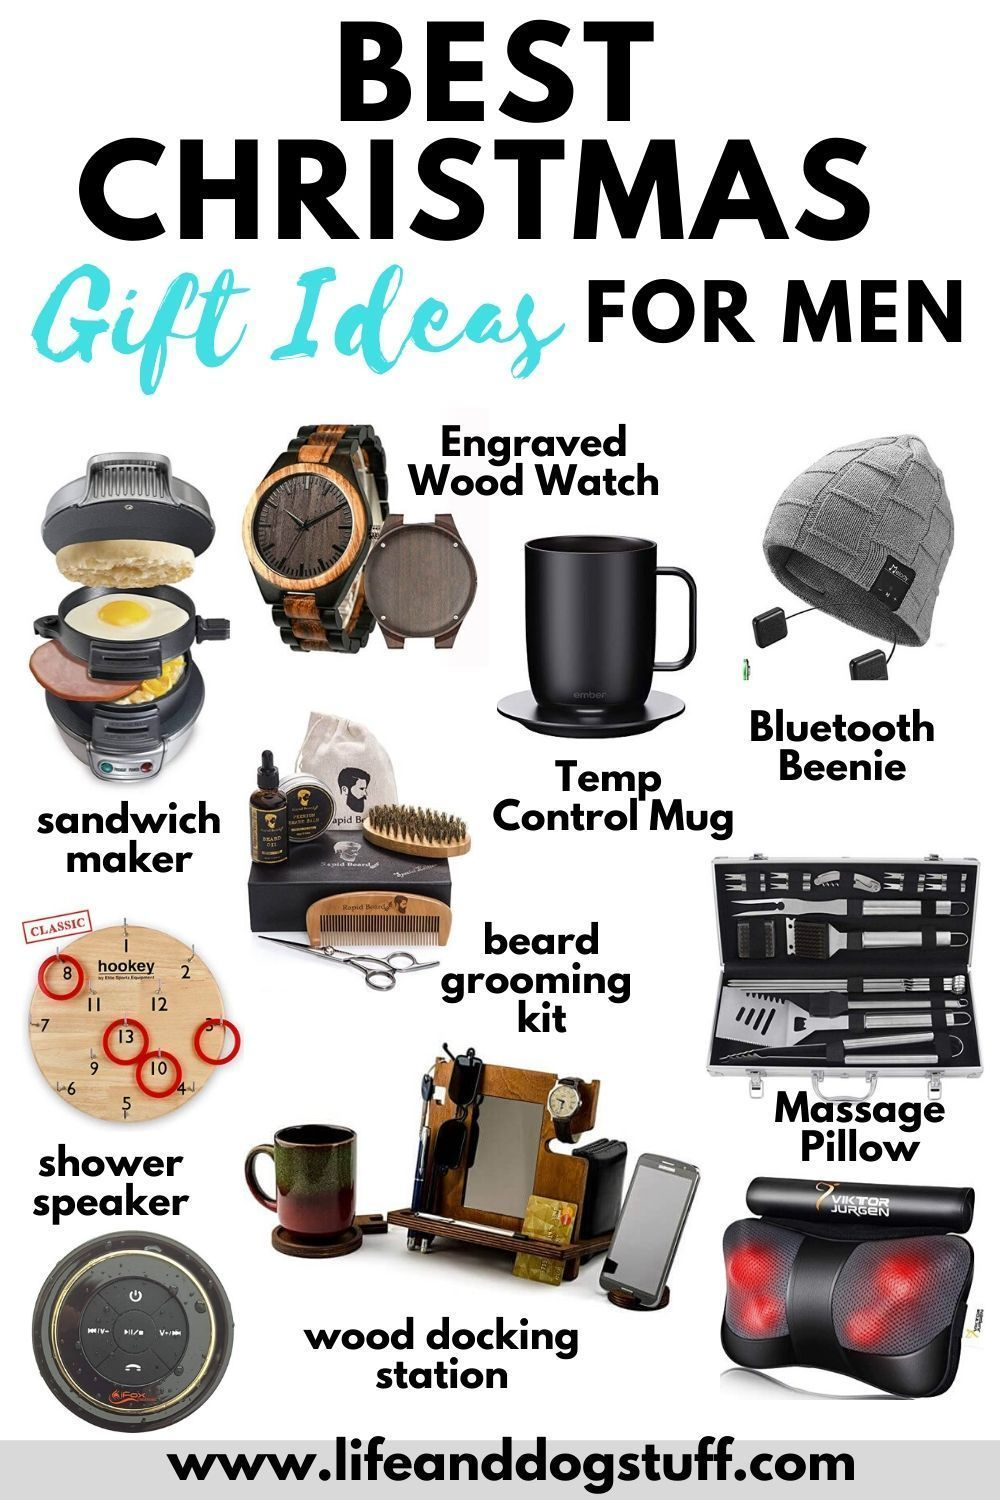 20 Best Christmas Gift Ideas For Men 2019 Xmas Presents Unusual